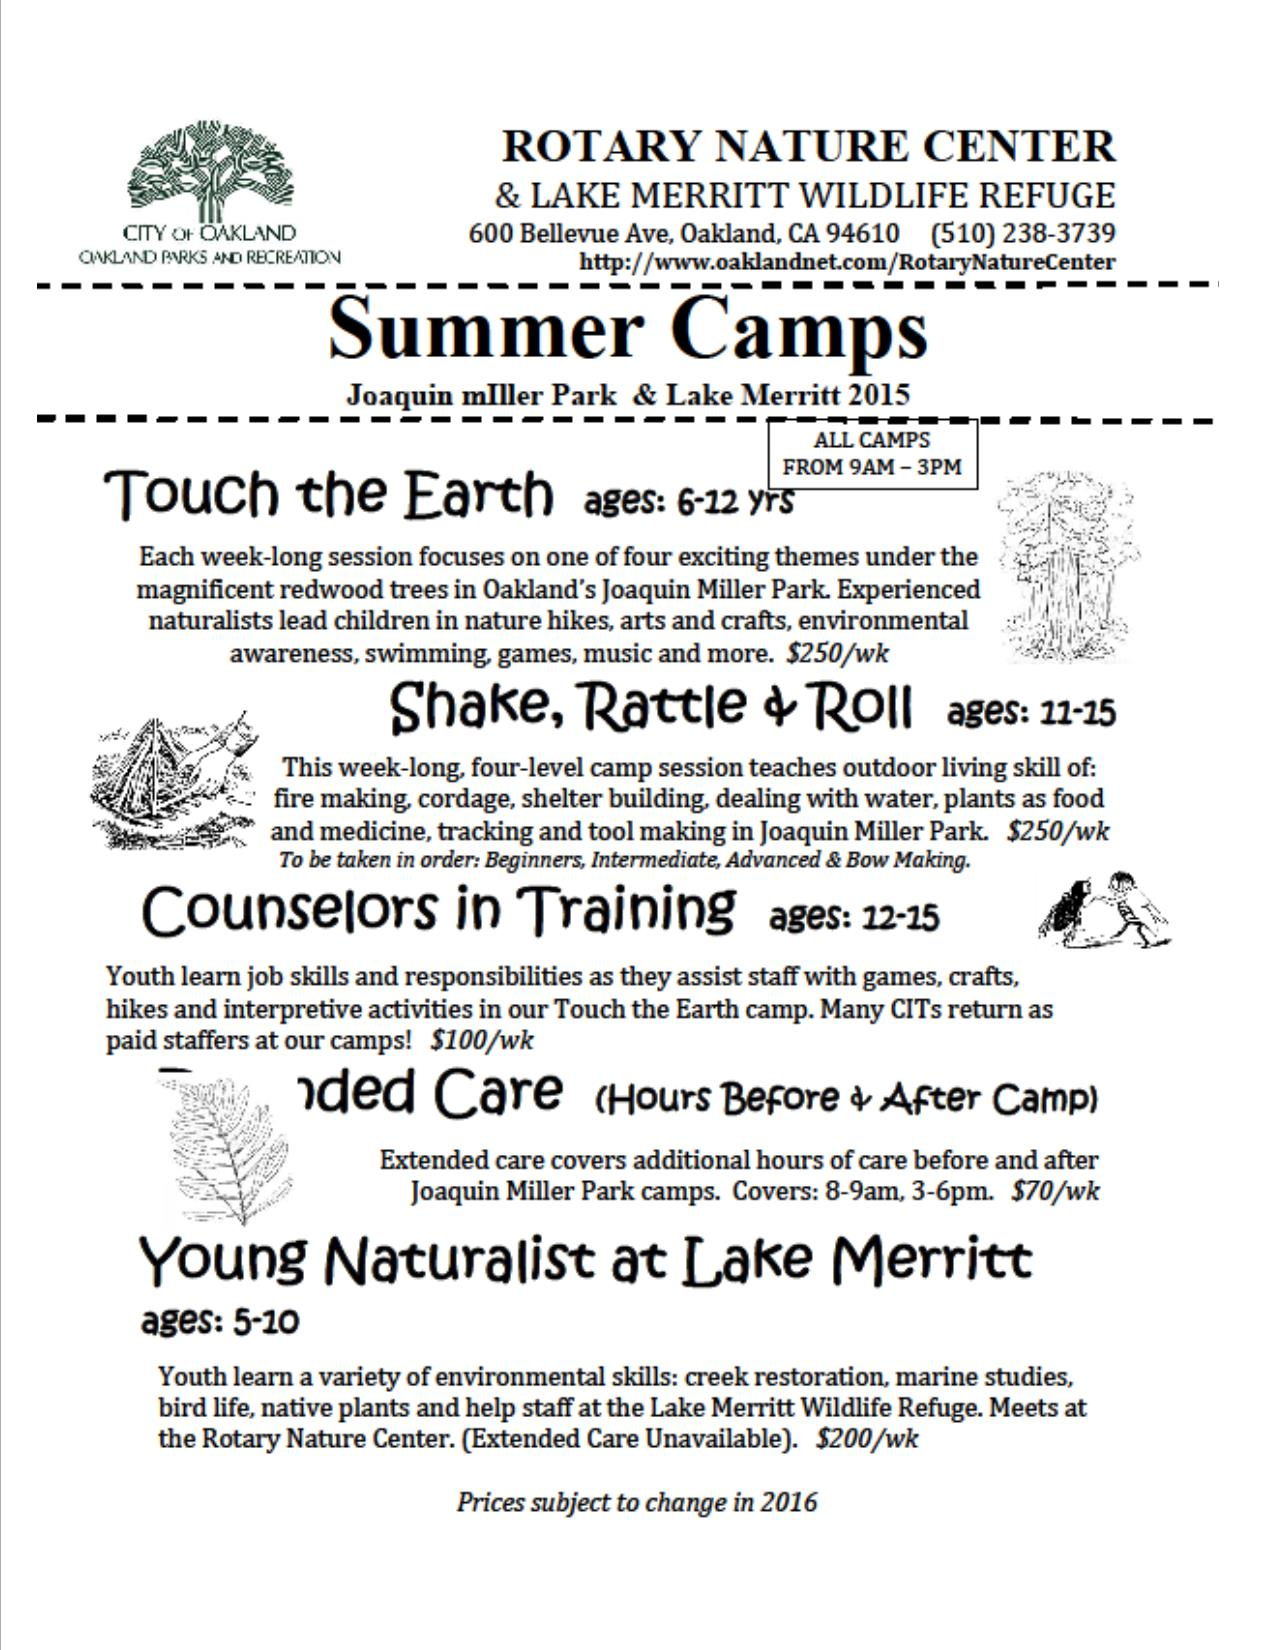 OPR Rotary Nature Center Summer Camp